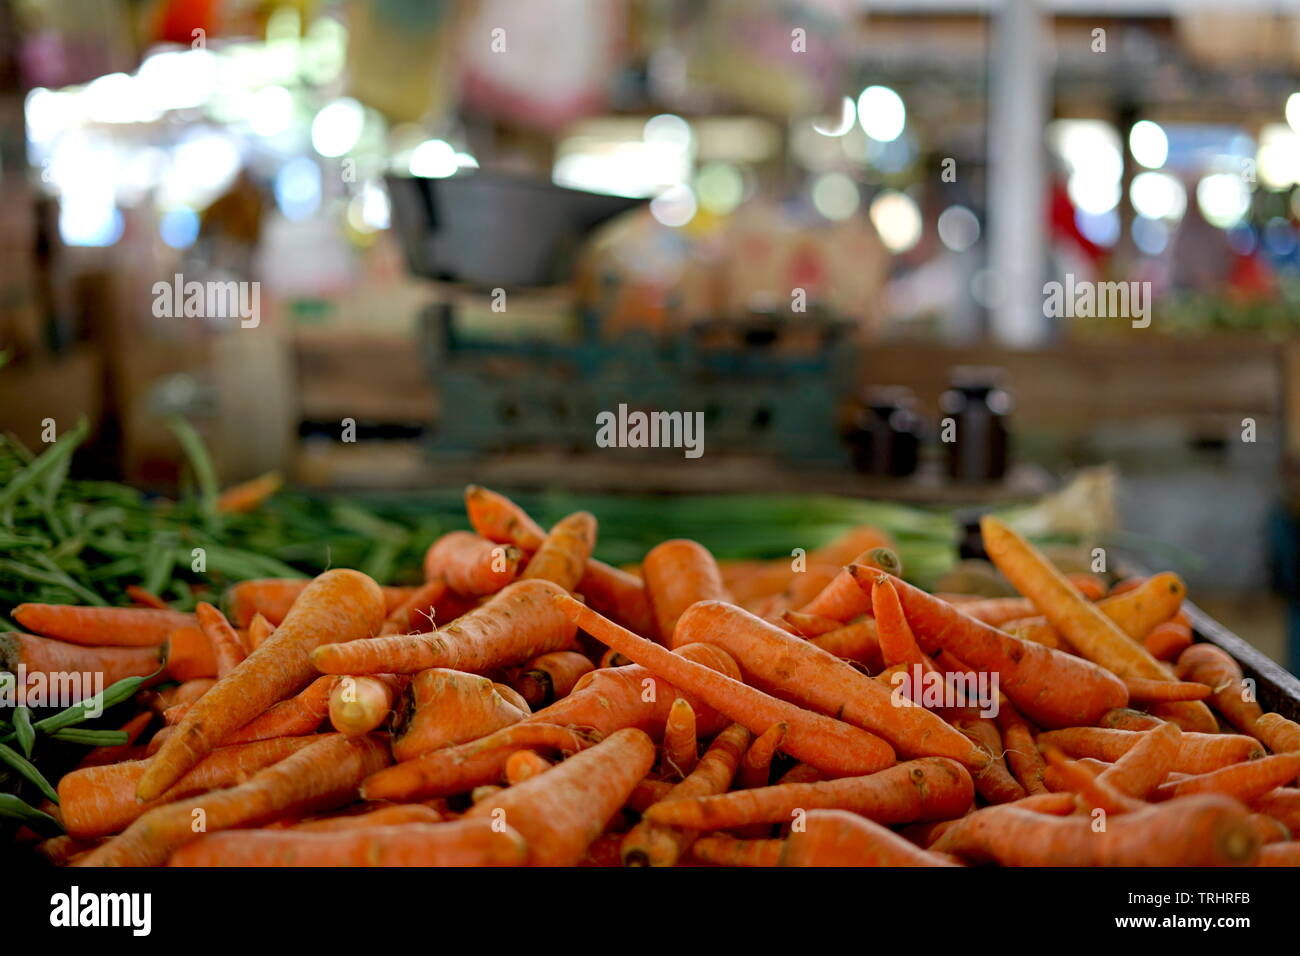 Fresh Carrots and old scales at Farmers' market - Stock Image